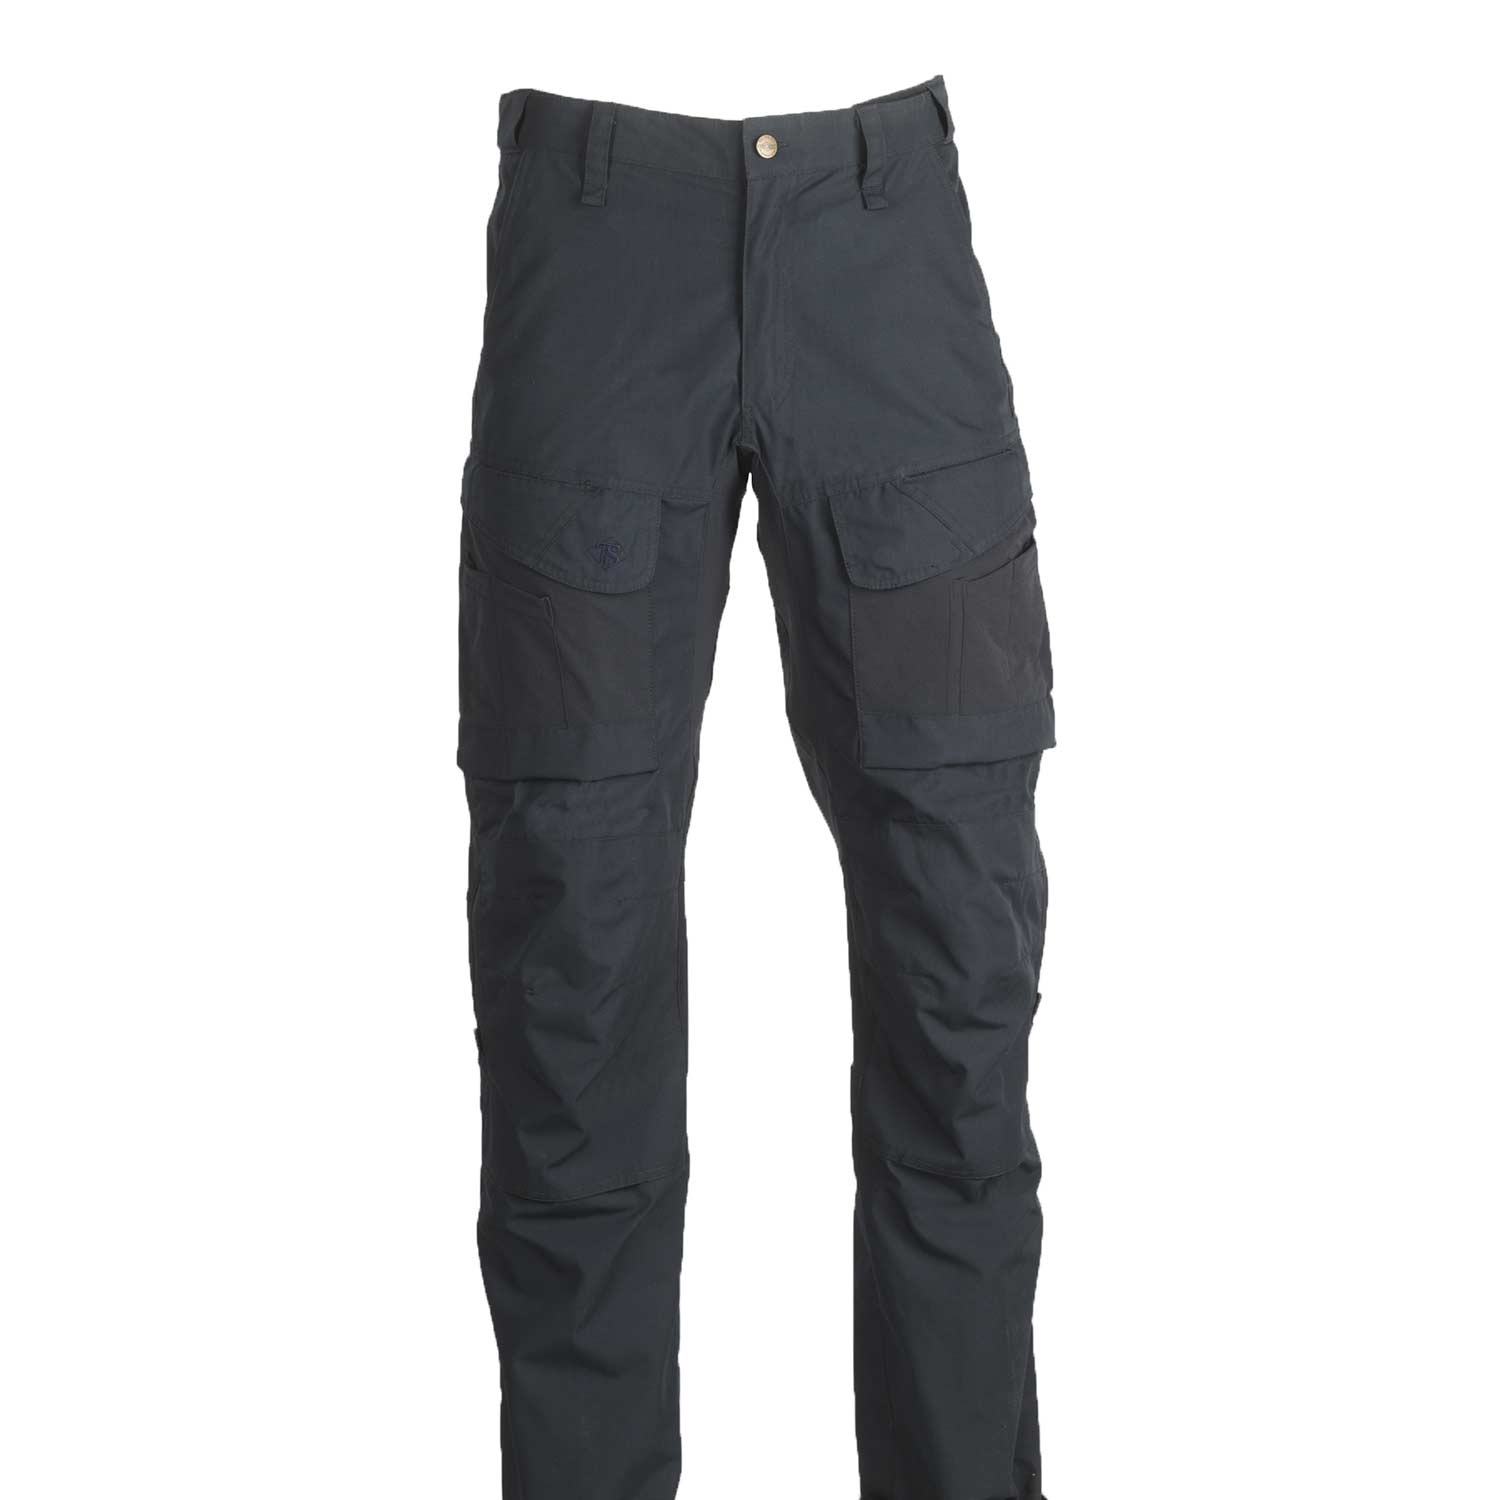 Tru-Spec 24-7 Xpedition EMS Pants